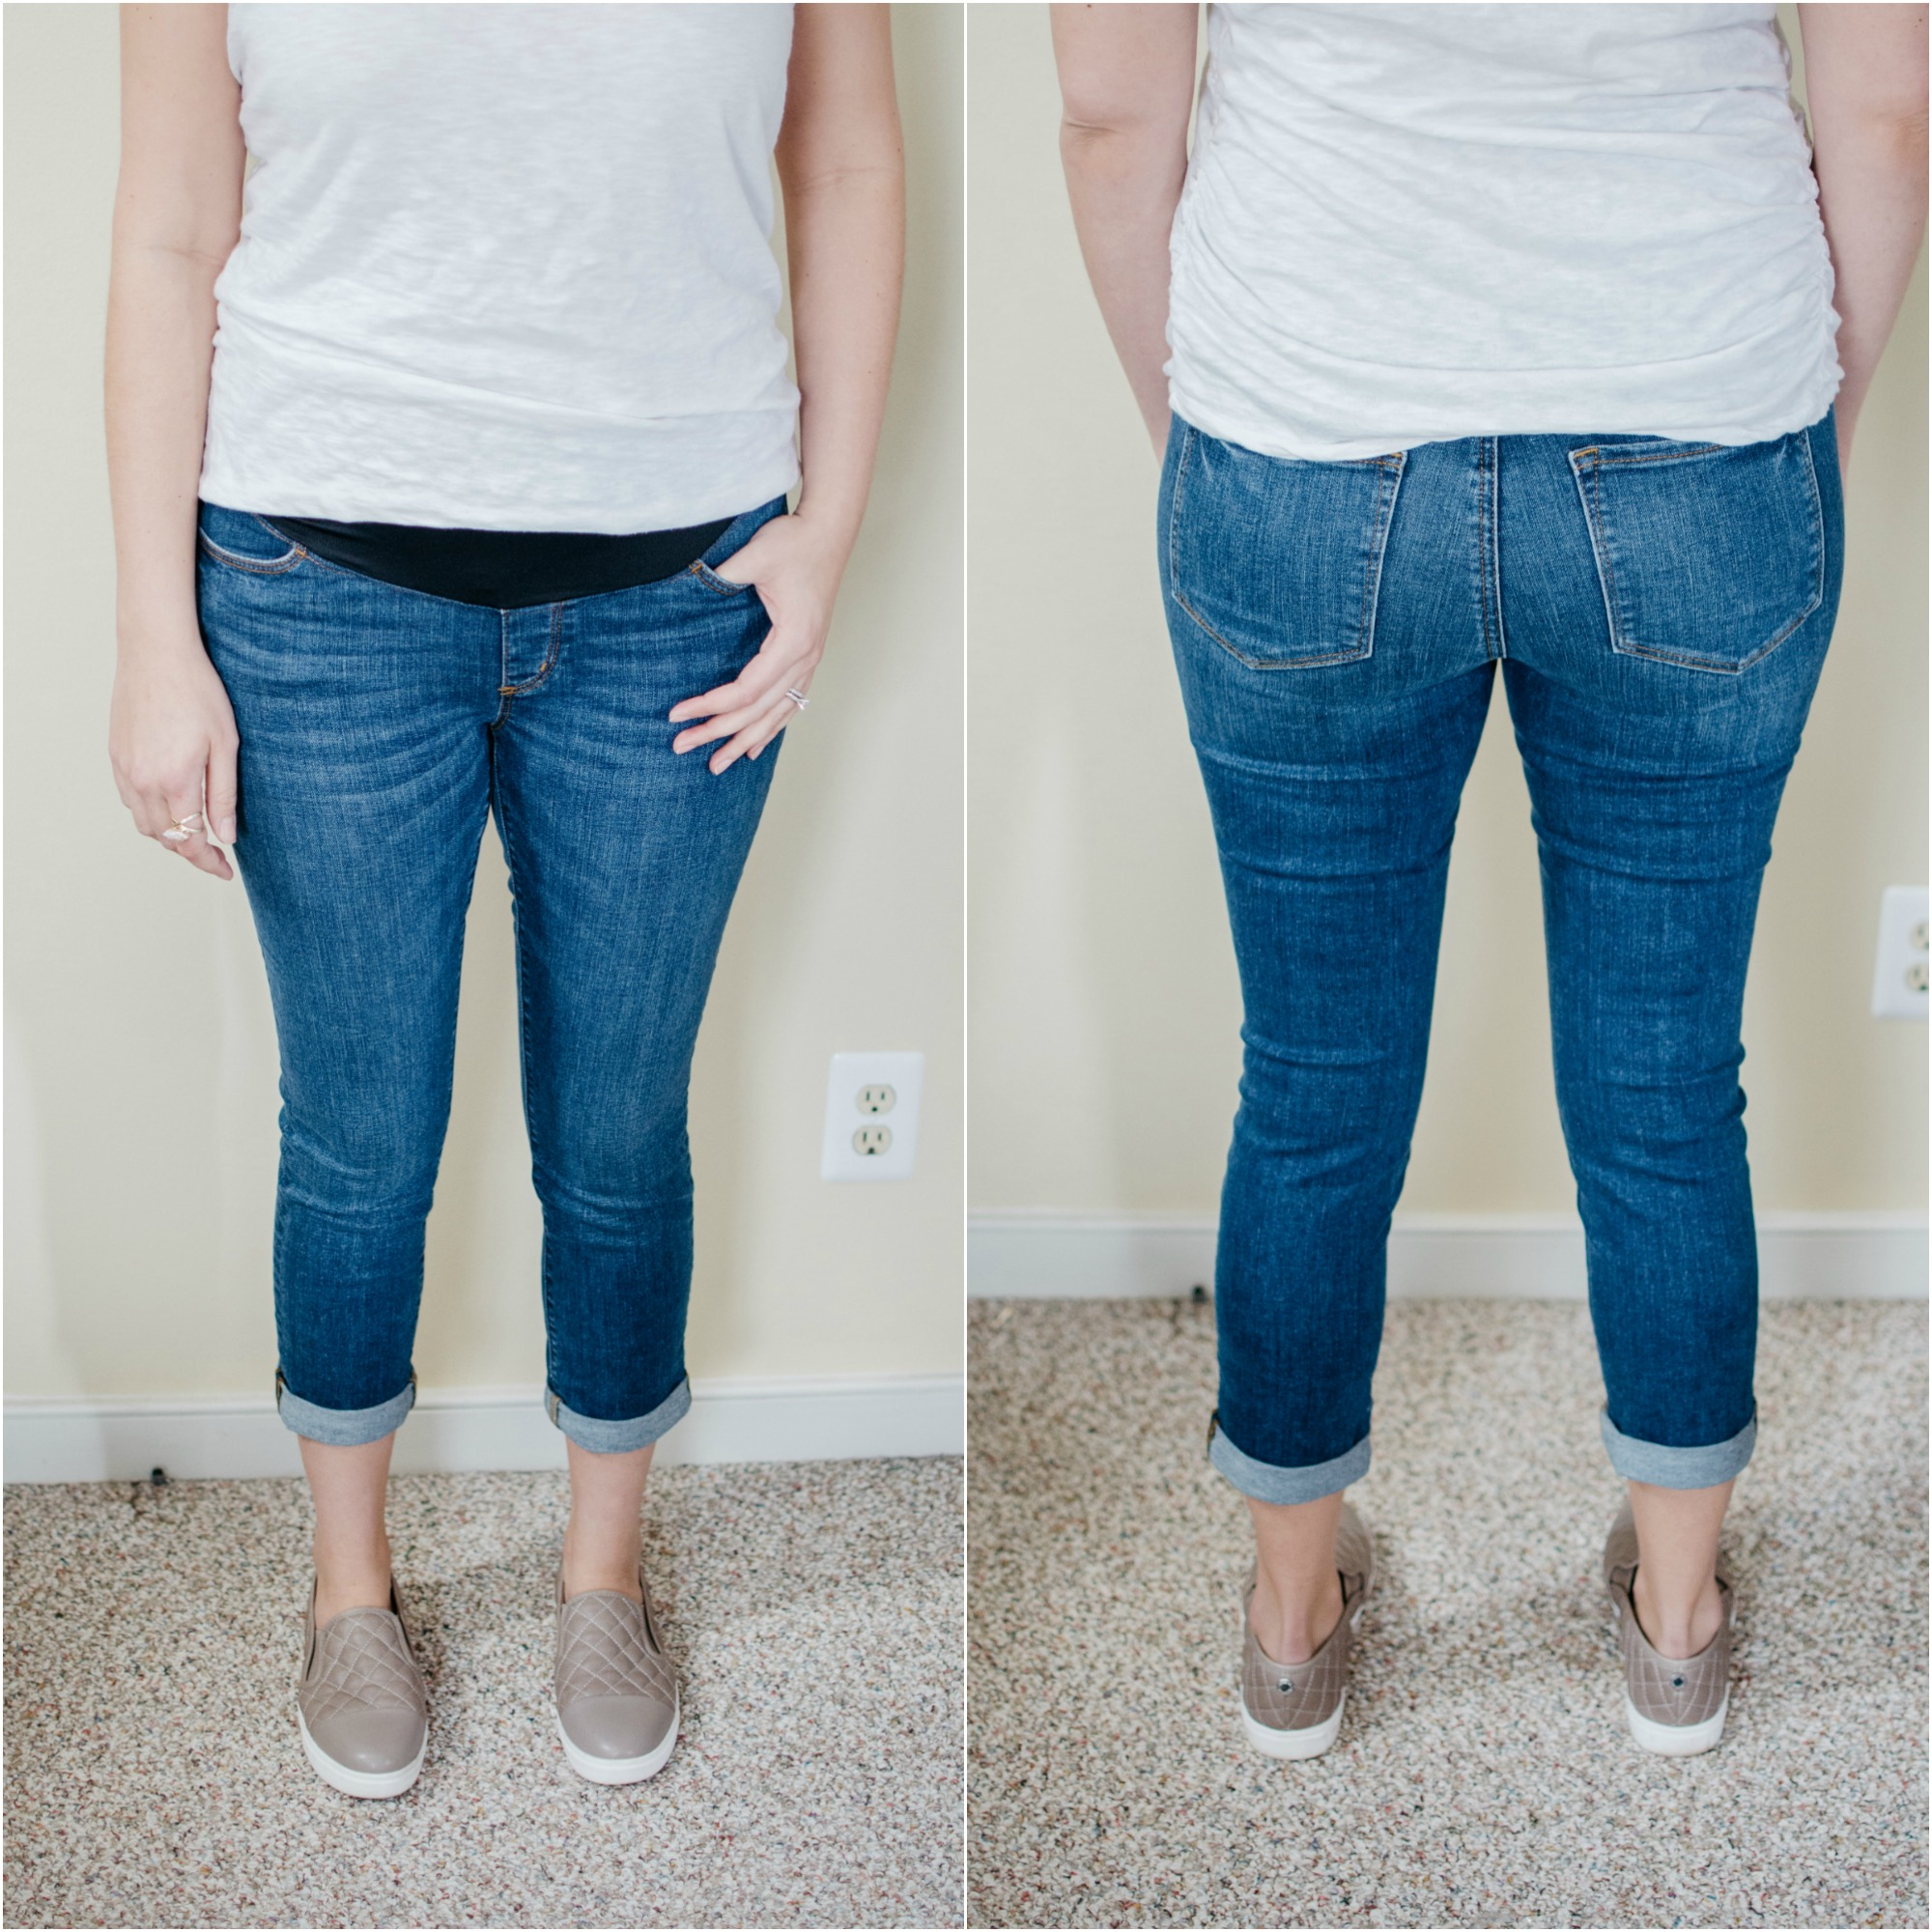 Loft Maternity Jeans review | See reviews of over 15 maternity jeans brands by clicking through to this post! | bylaurenm.com